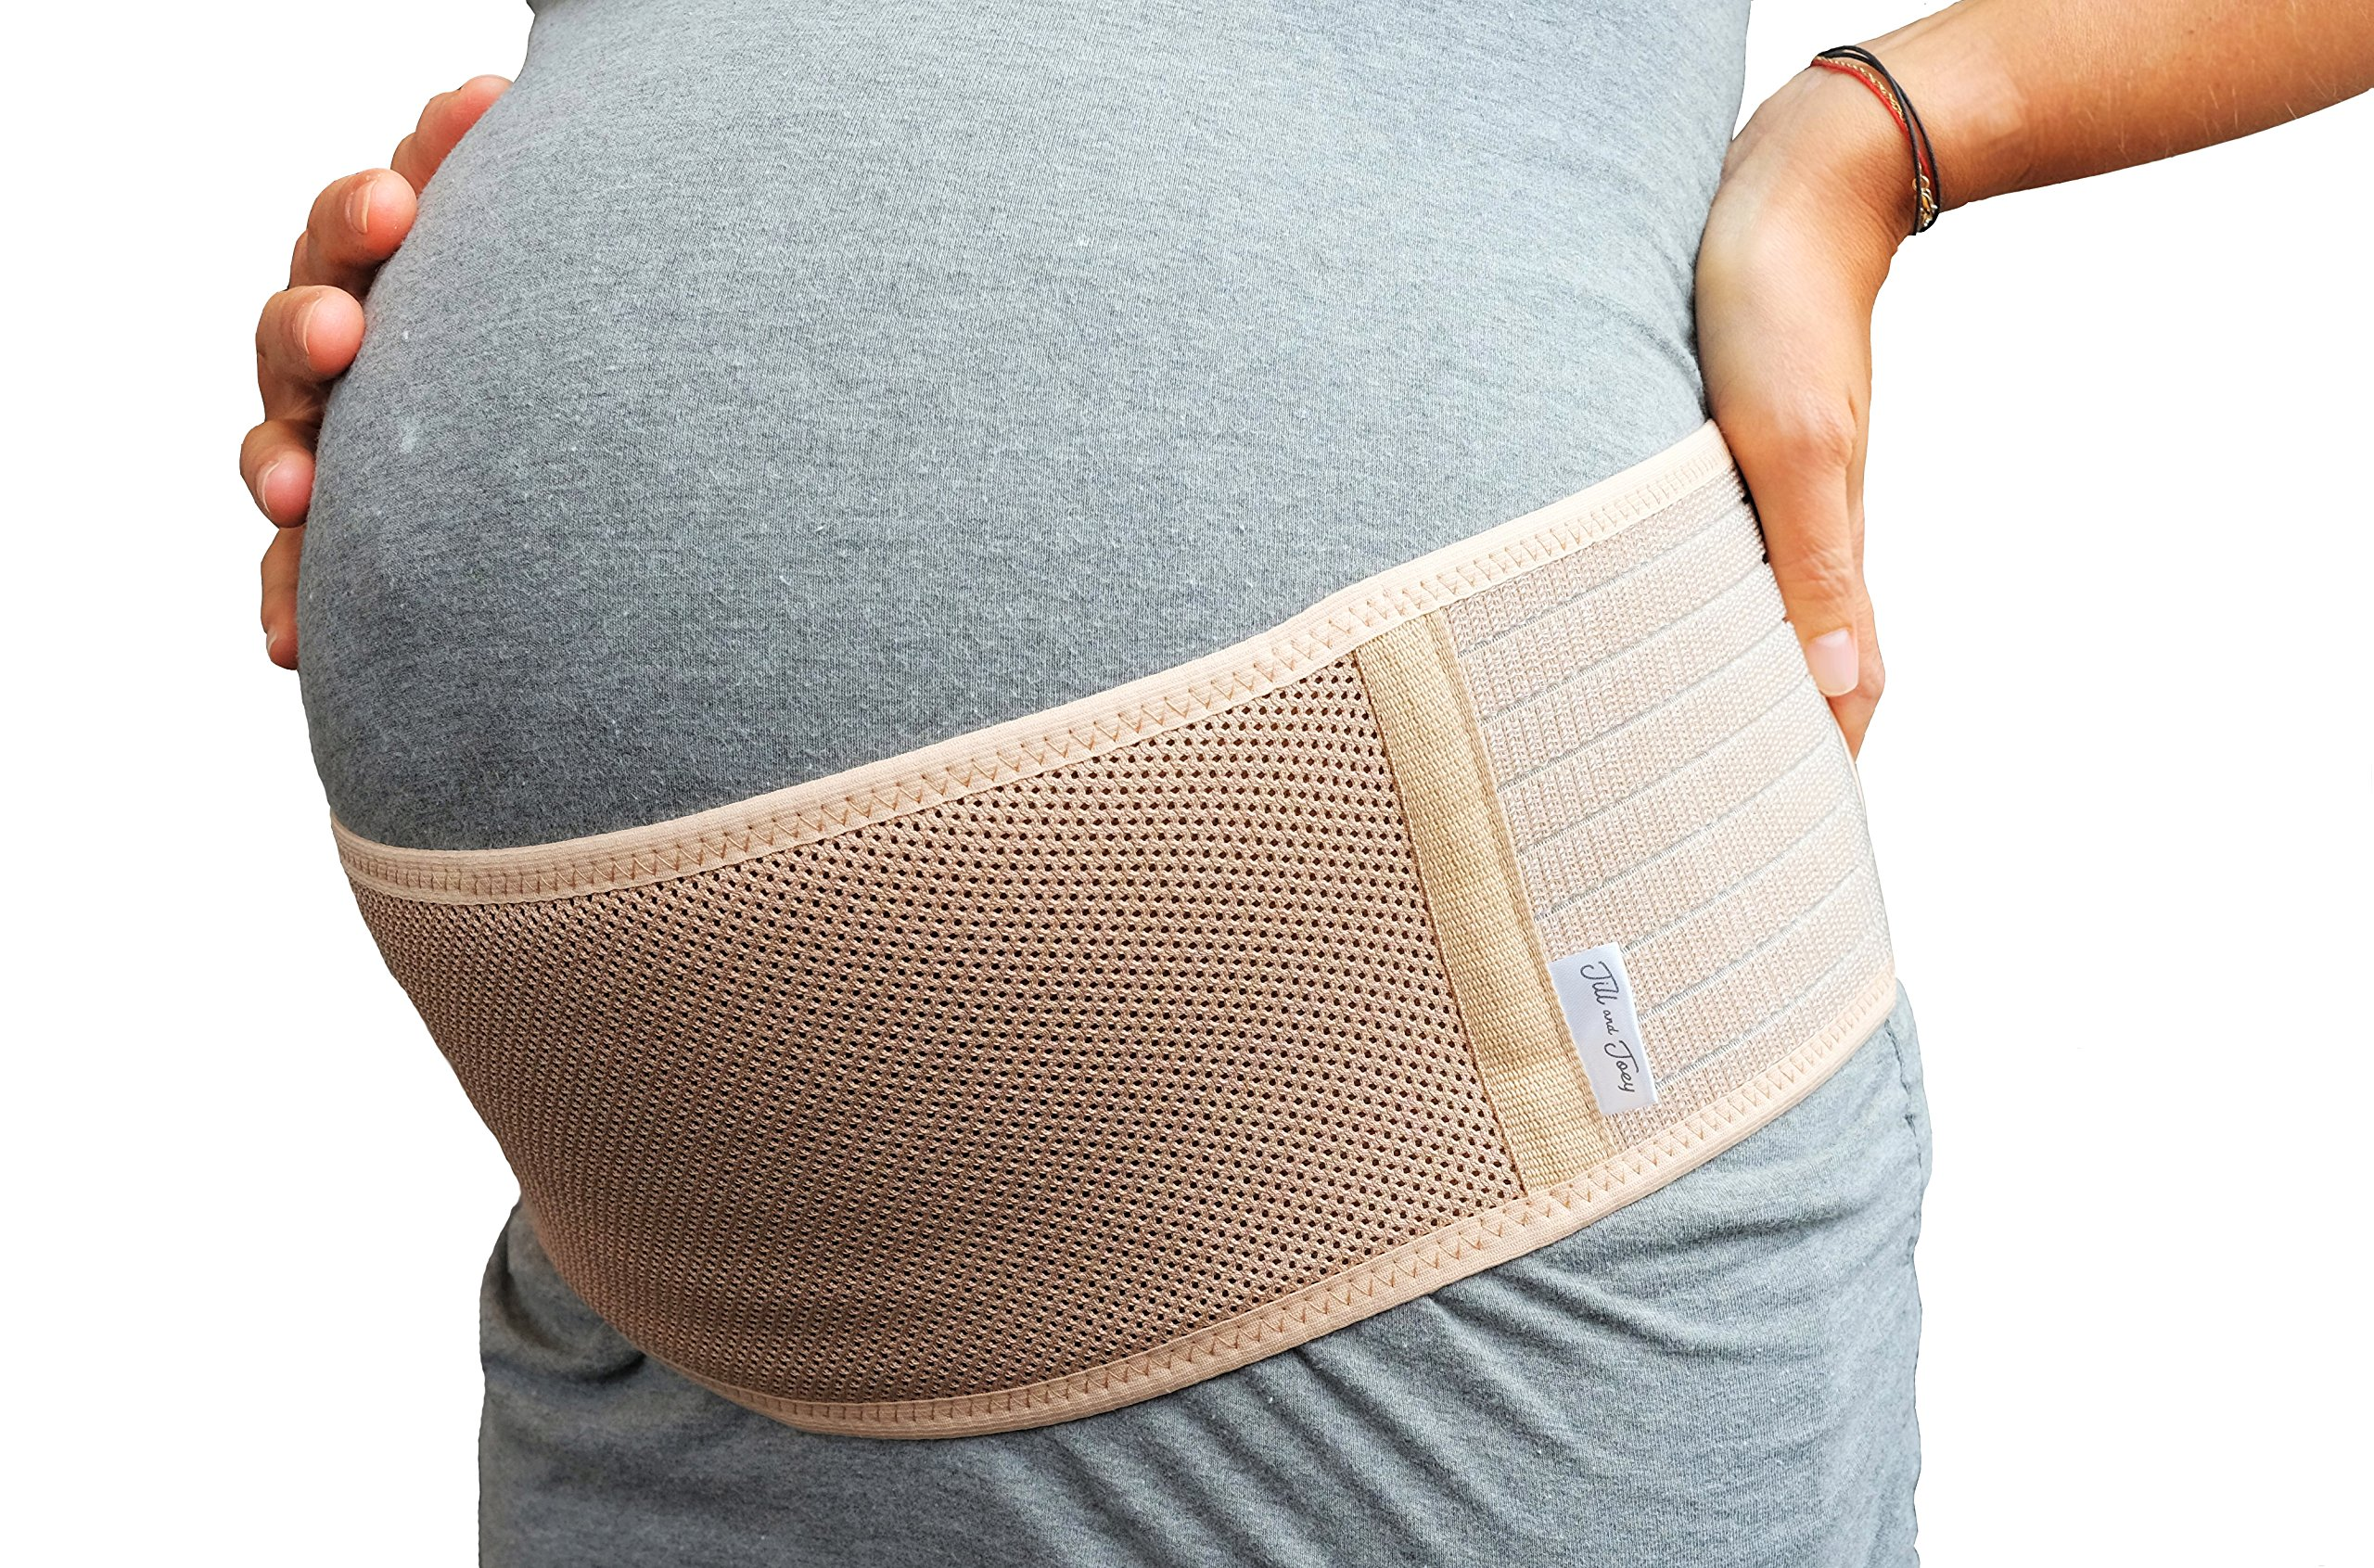 Jill & Joey Belly Band for Pregnancy - Back and Belly Support to Soothe Pregnancy and Maternity Pain in Hips and Pelvis - Breathable Band, Adjustable Size, Beige